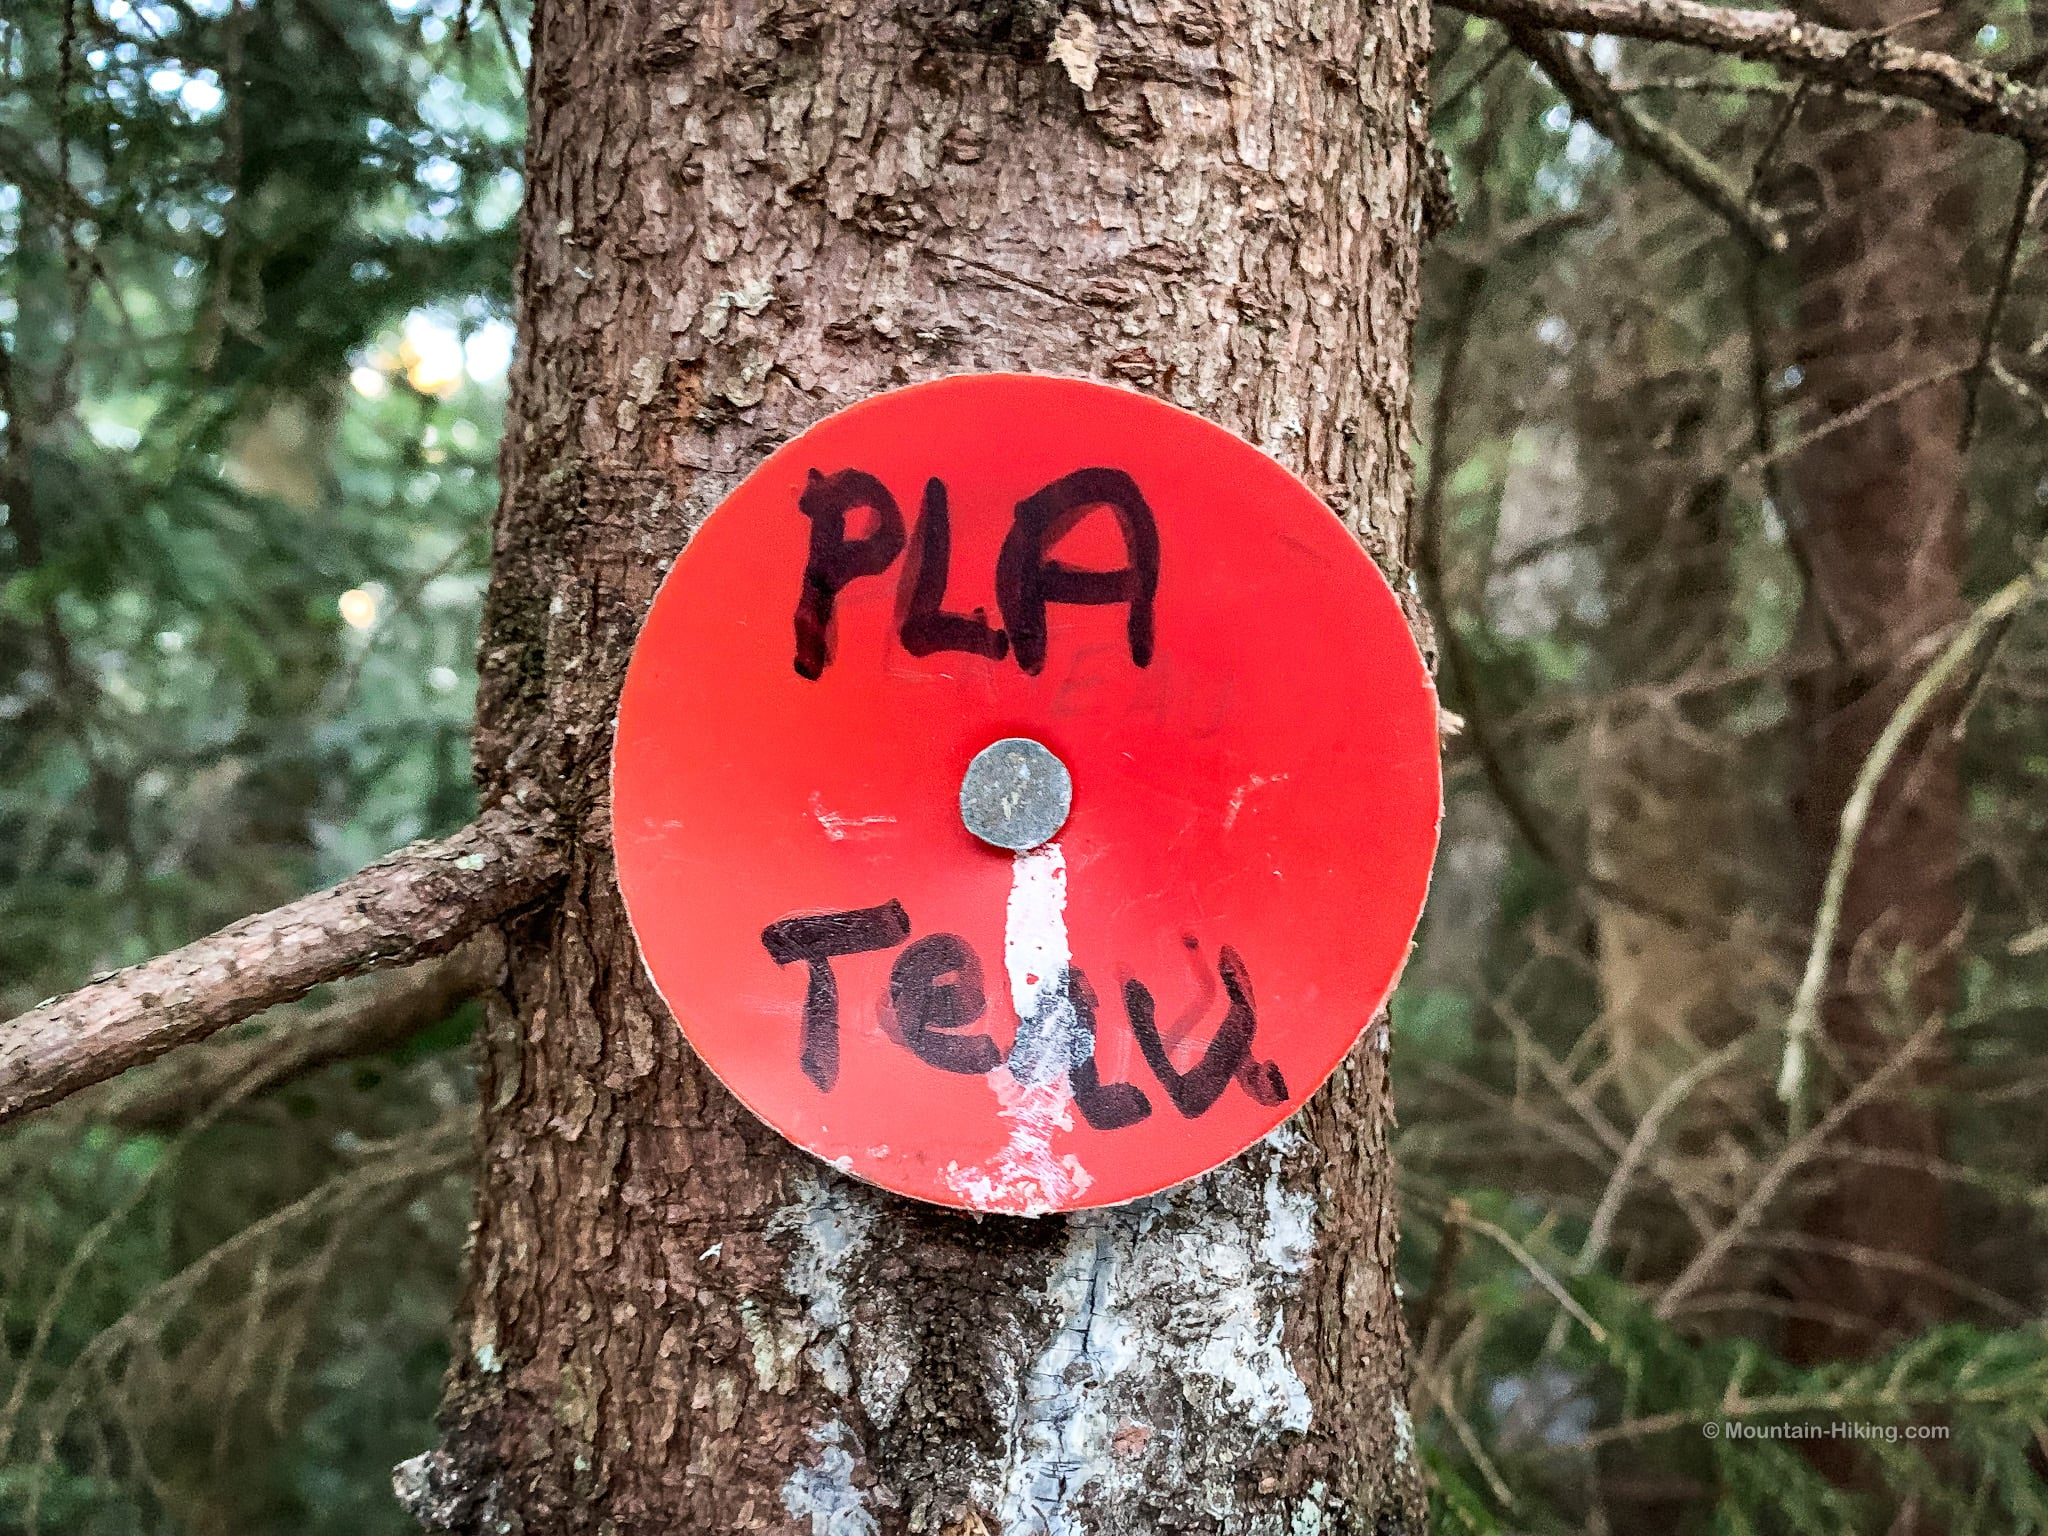 red plastic summit marker on young tree trunk